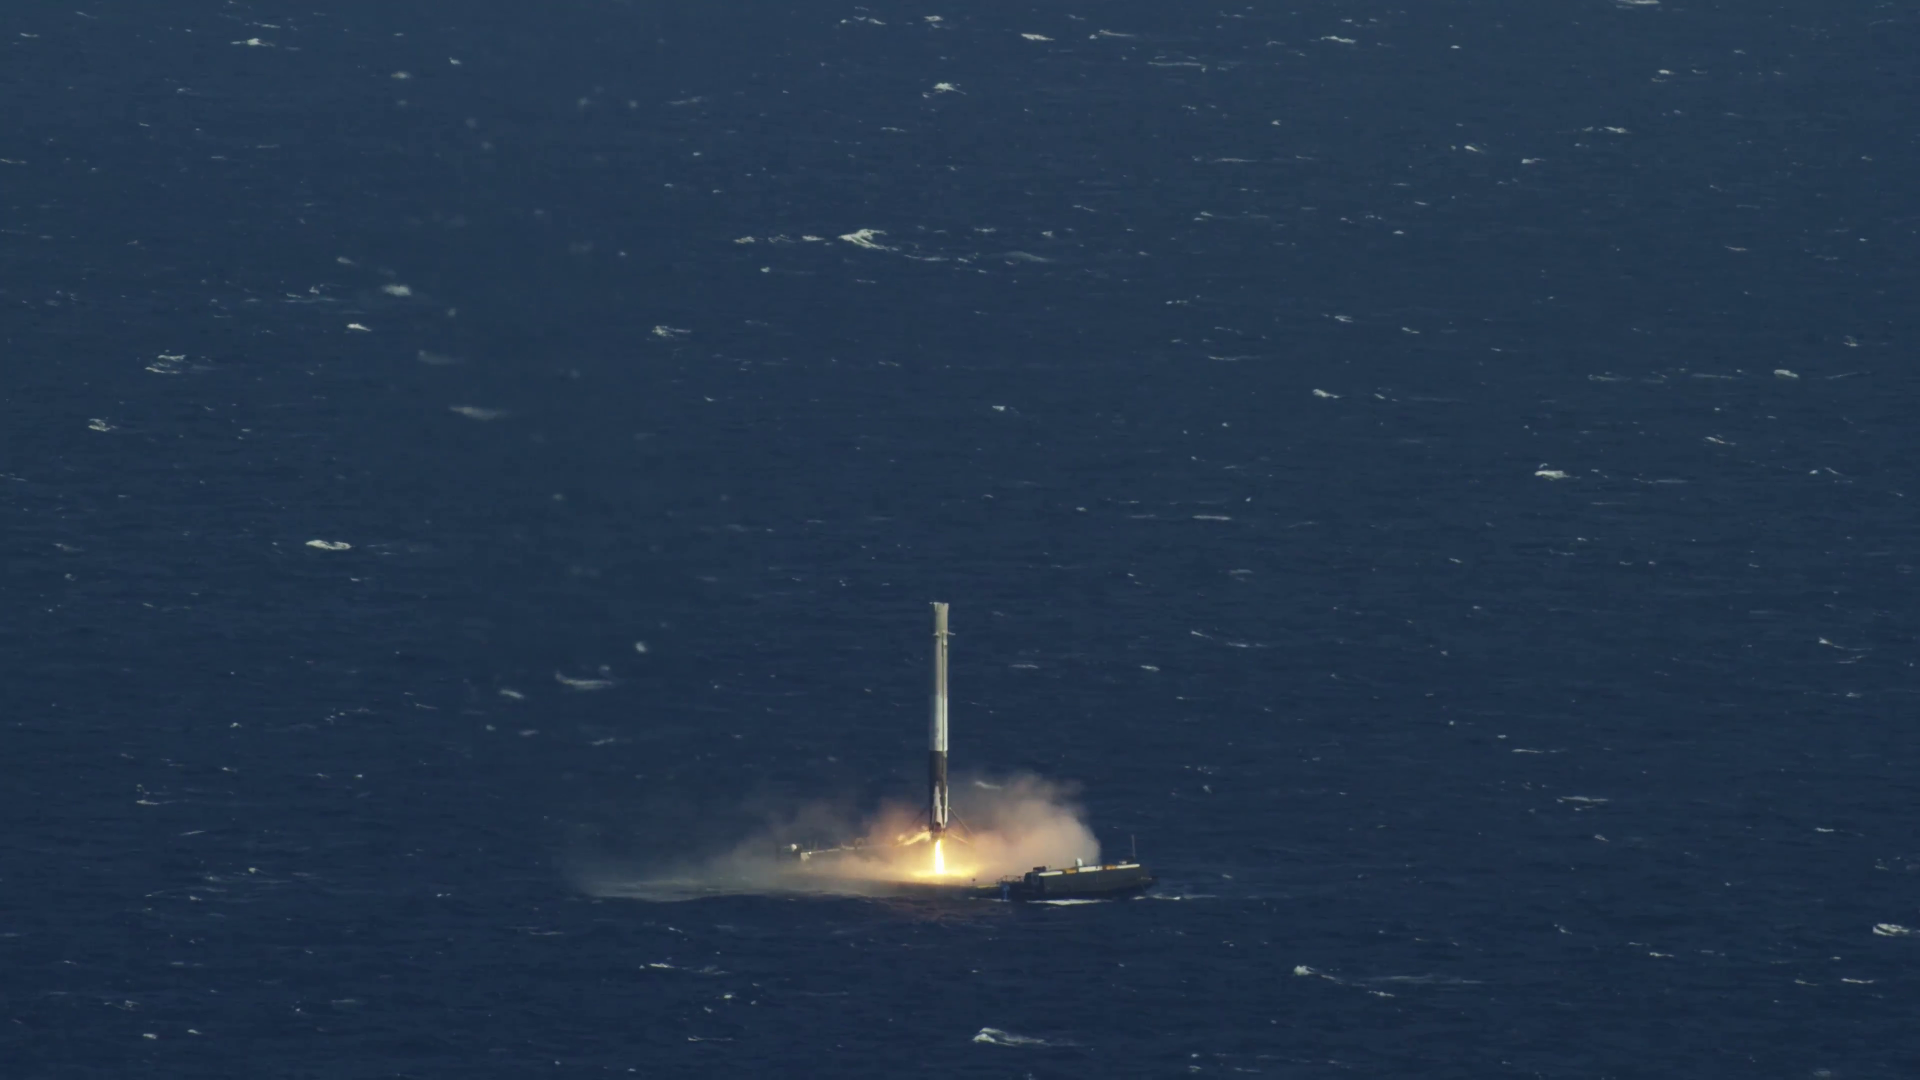 I extracted a frame from the SpaceX landing video now a